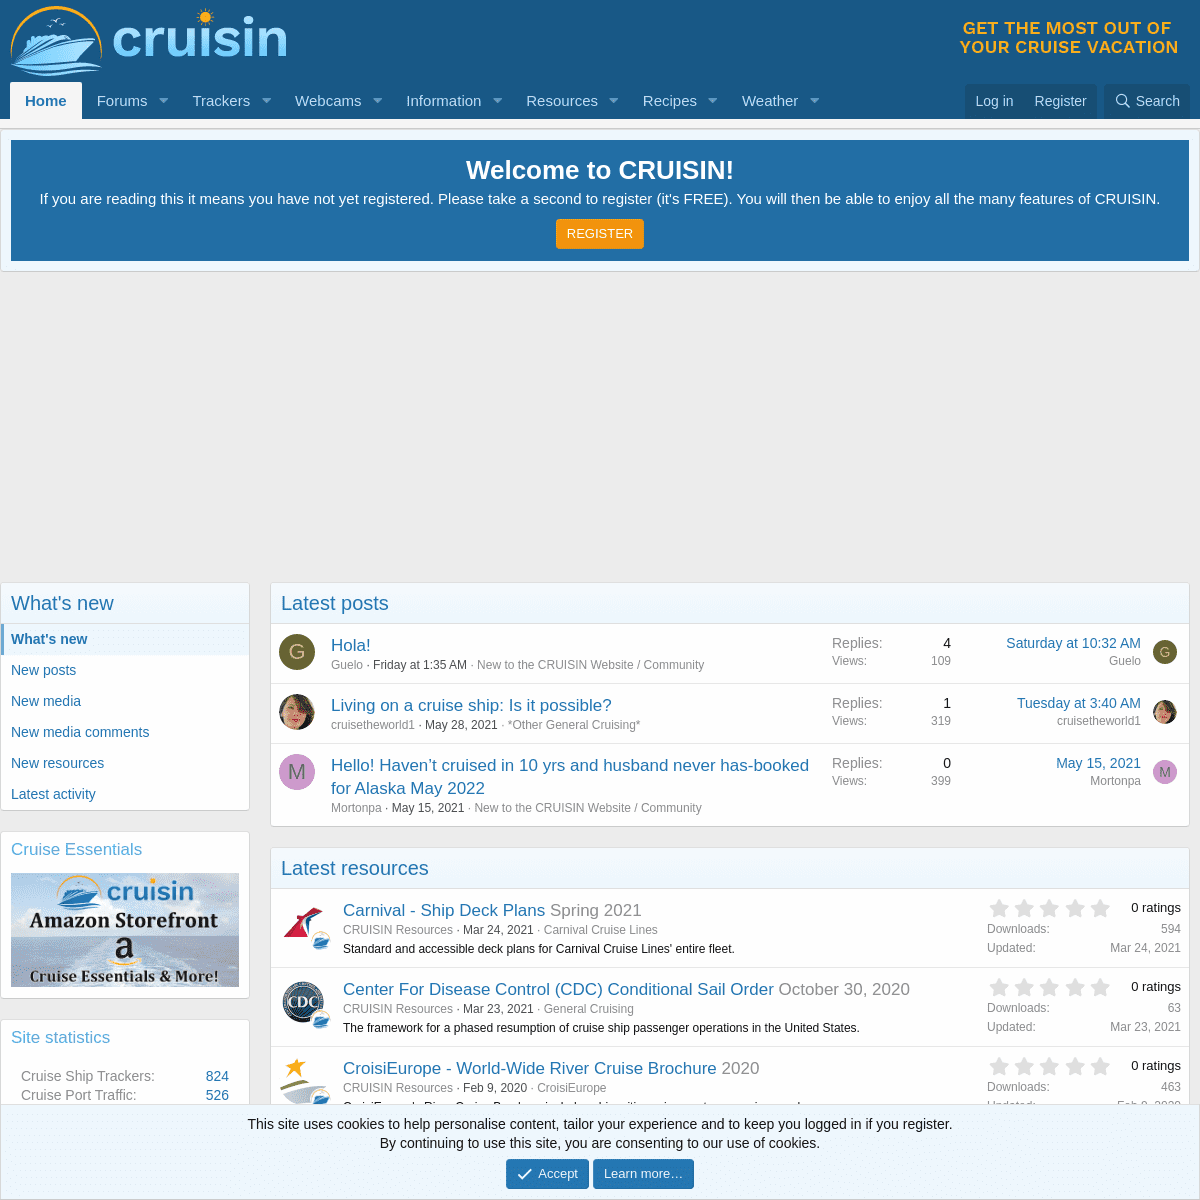 CRUISIN - Get The Most Out Of Your Cruise Vacation!